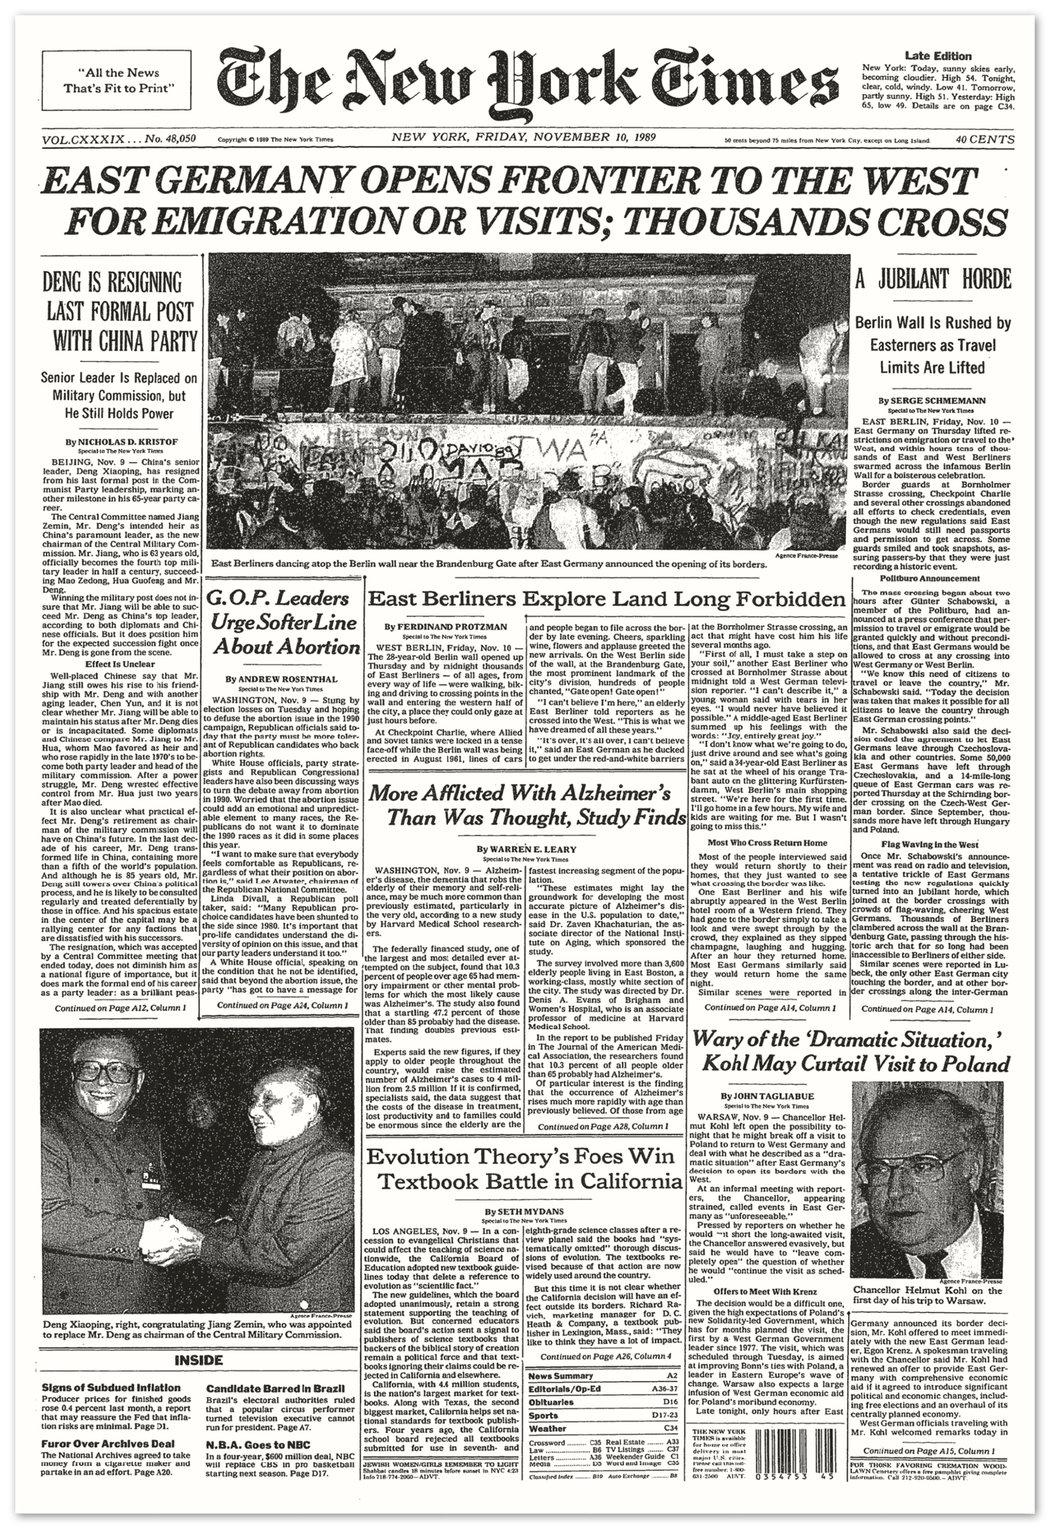 09insider victor image4 master1050 - Meet the New York Times Bureau Manager Who Witnessed the Fall of the Berlin Wall